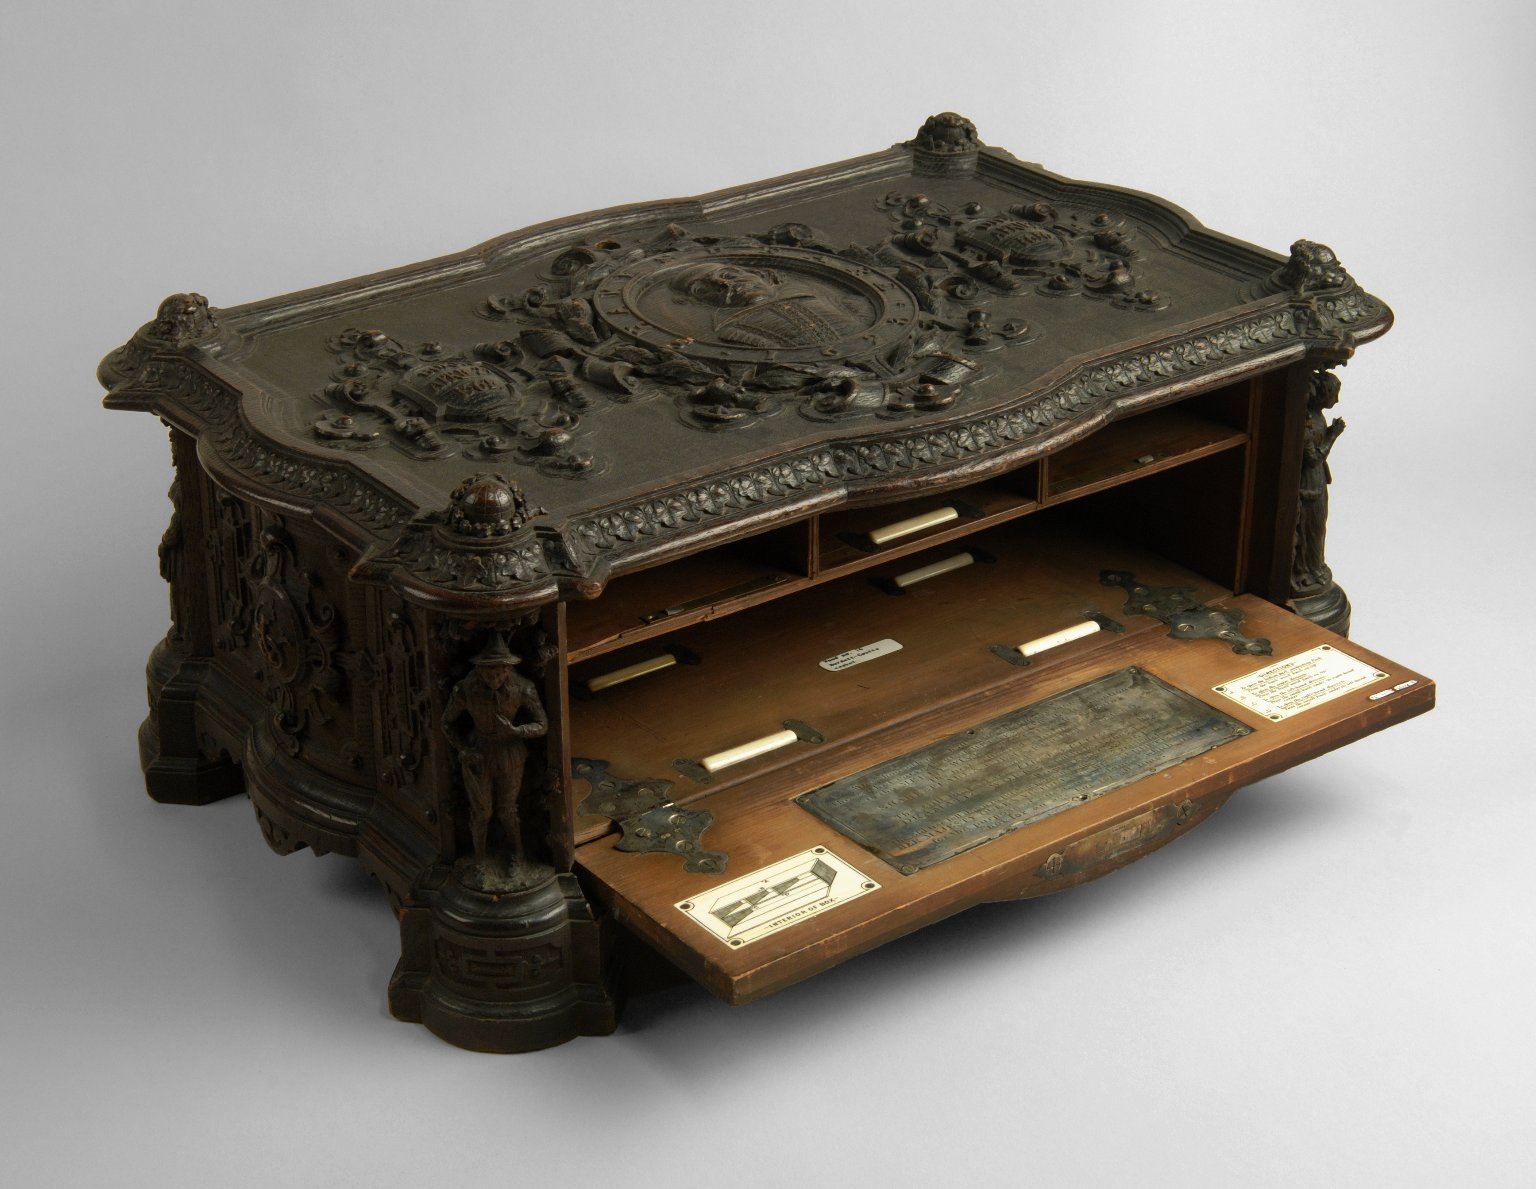 Oak casket used to hold the First Folio